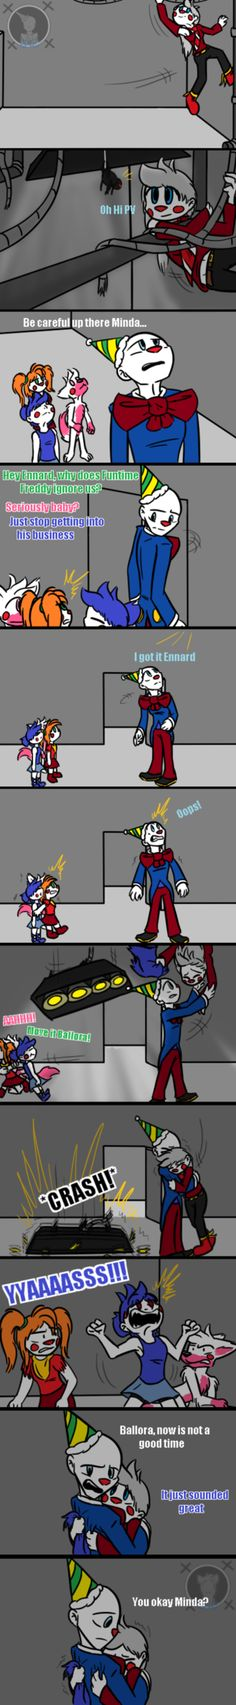 Washed Away Sorrows (FNAF Comic) Pt.3 by Blustreakgirl